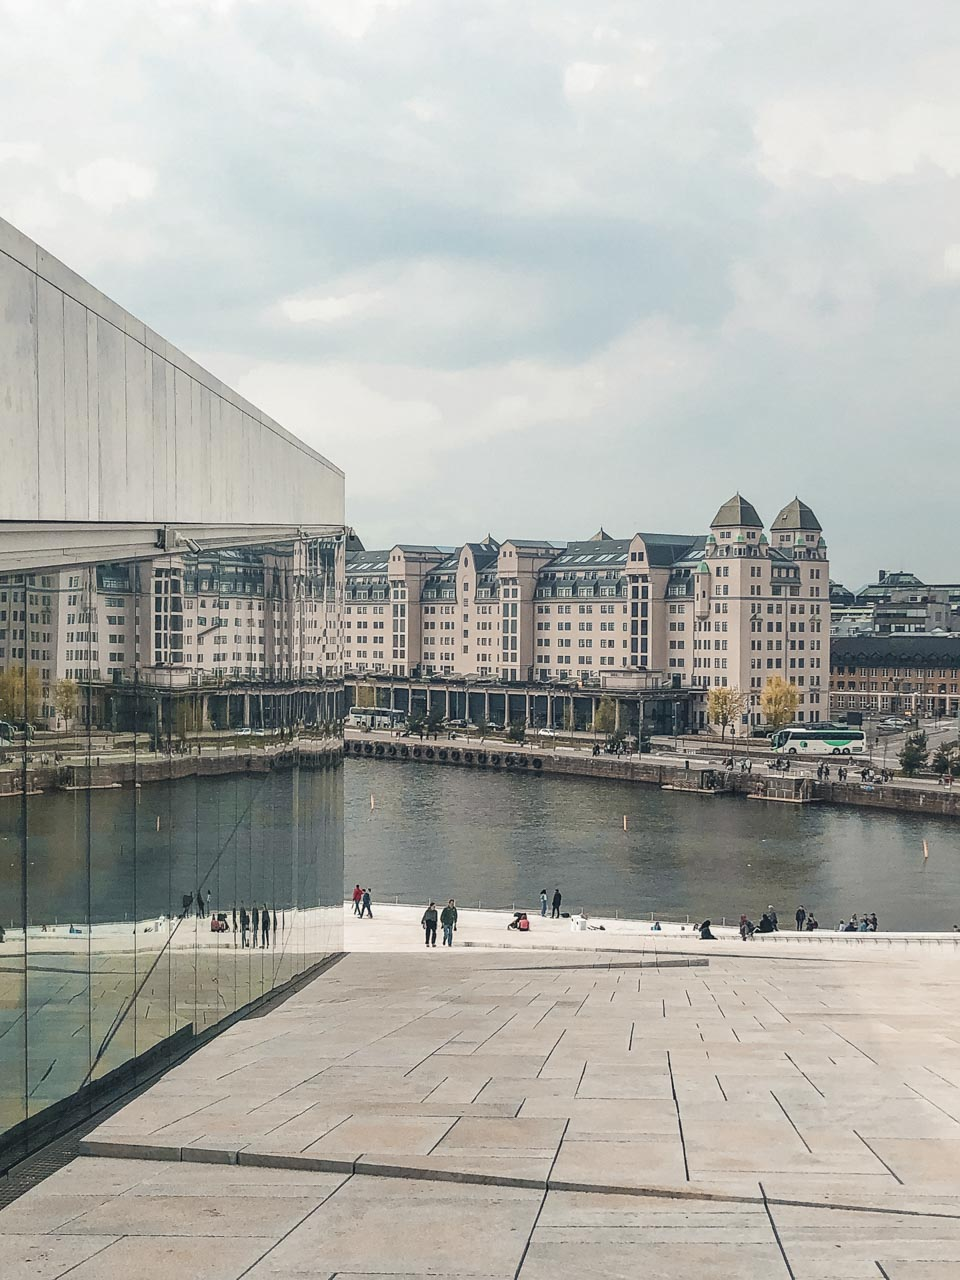 The view from the top of The Norwegian National Opera & Ballet in Oslo, Norway